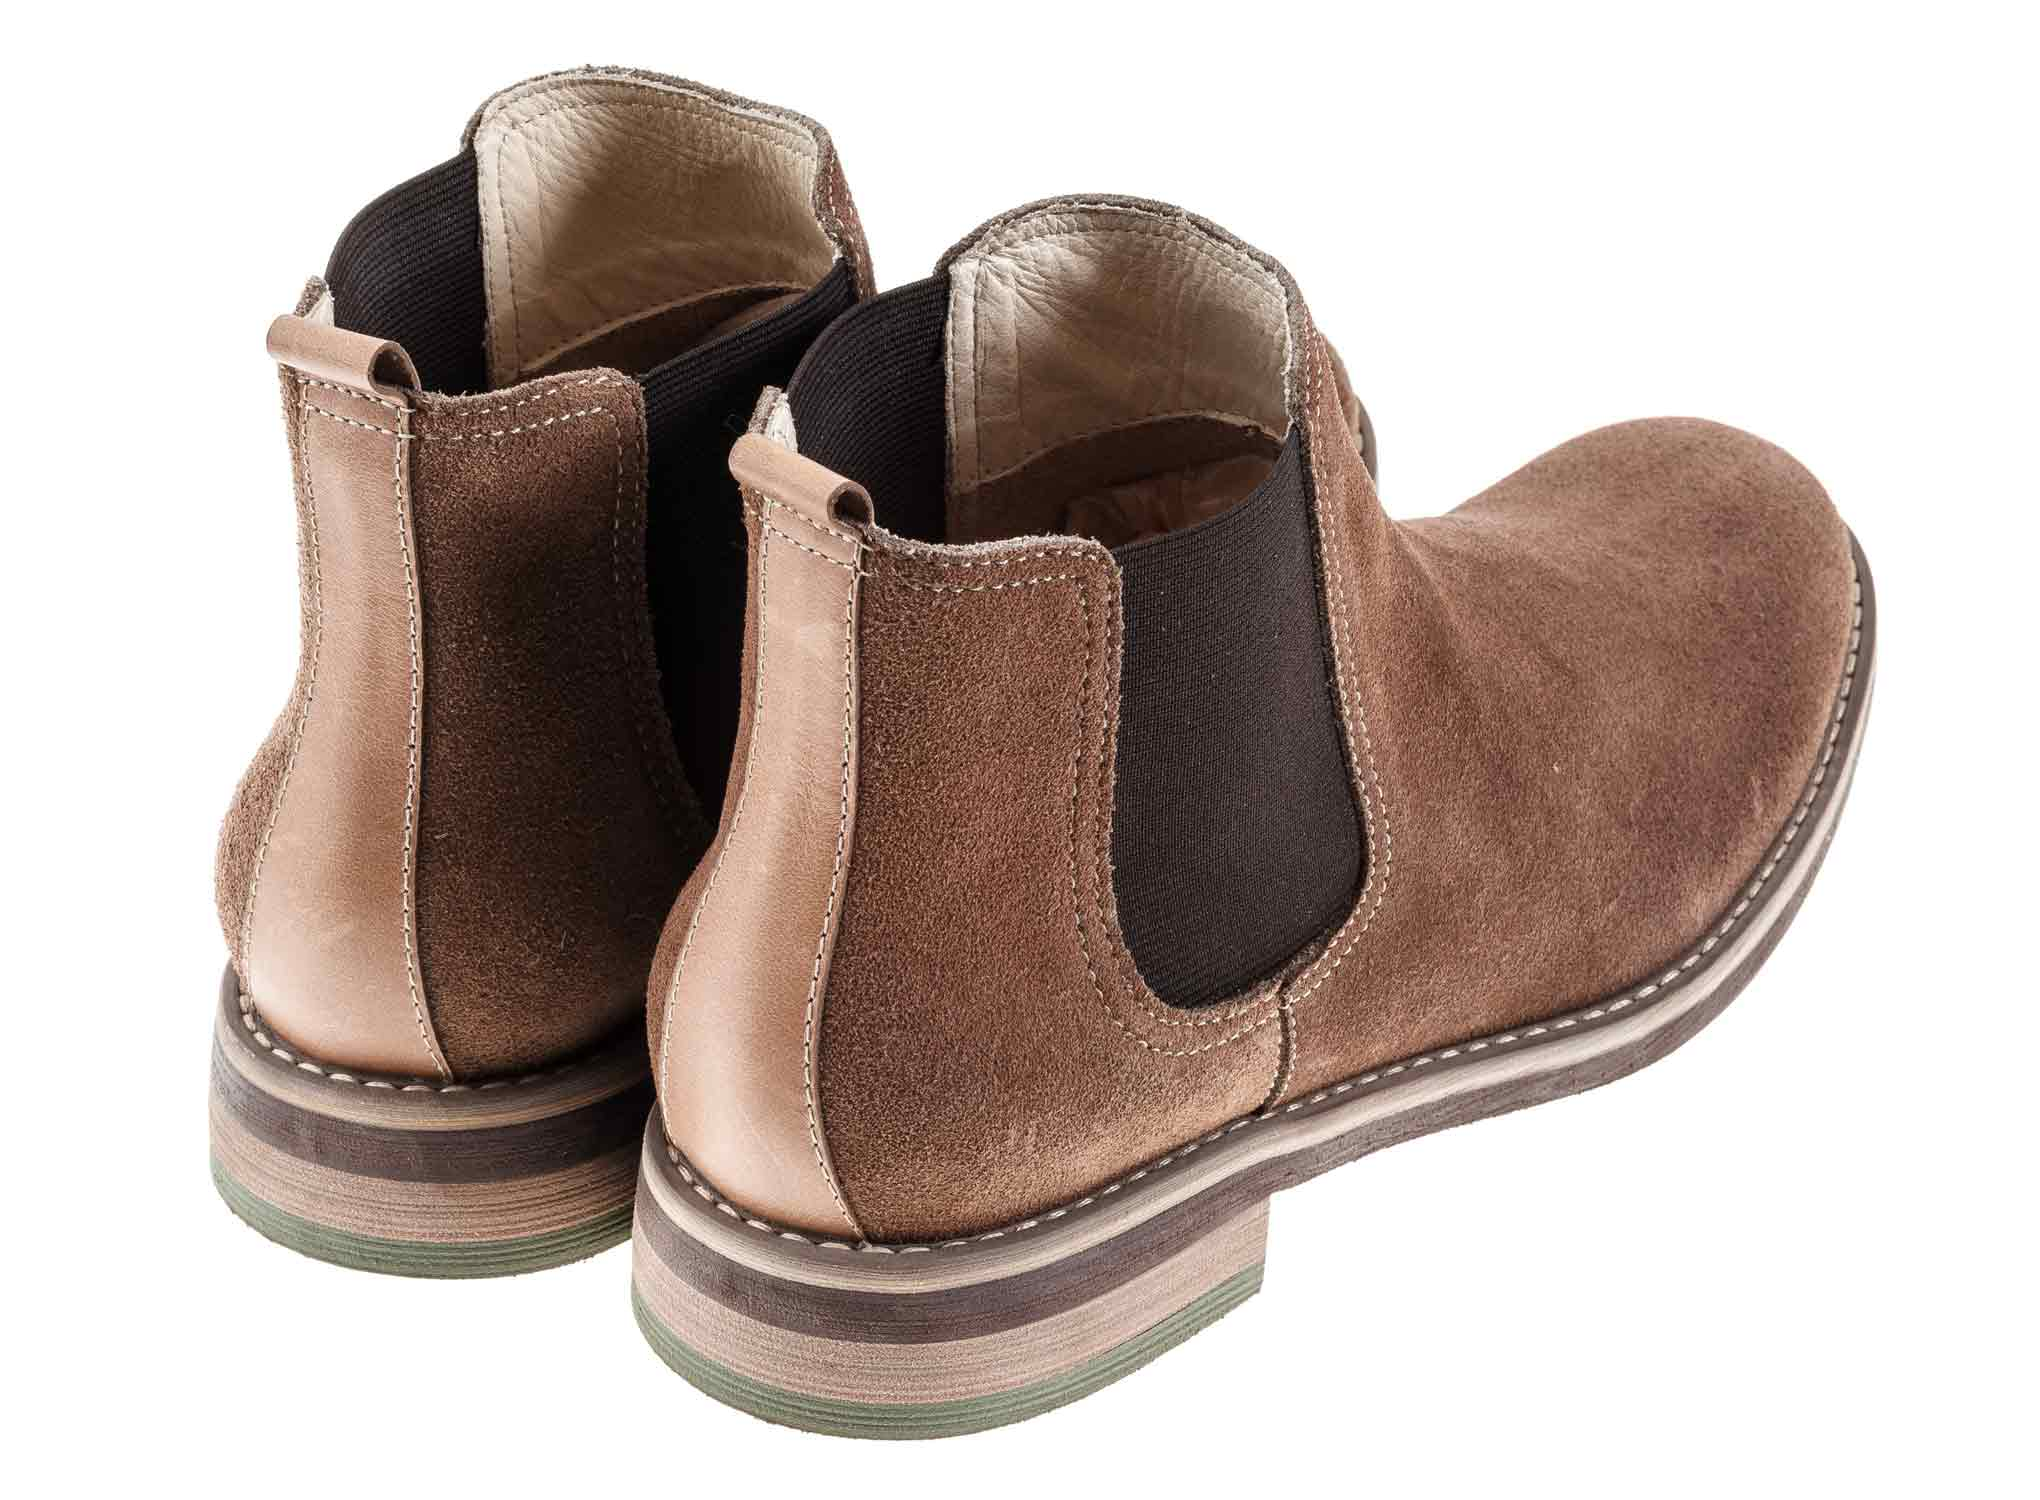 Baltic - Sand - Green Bear Shoes